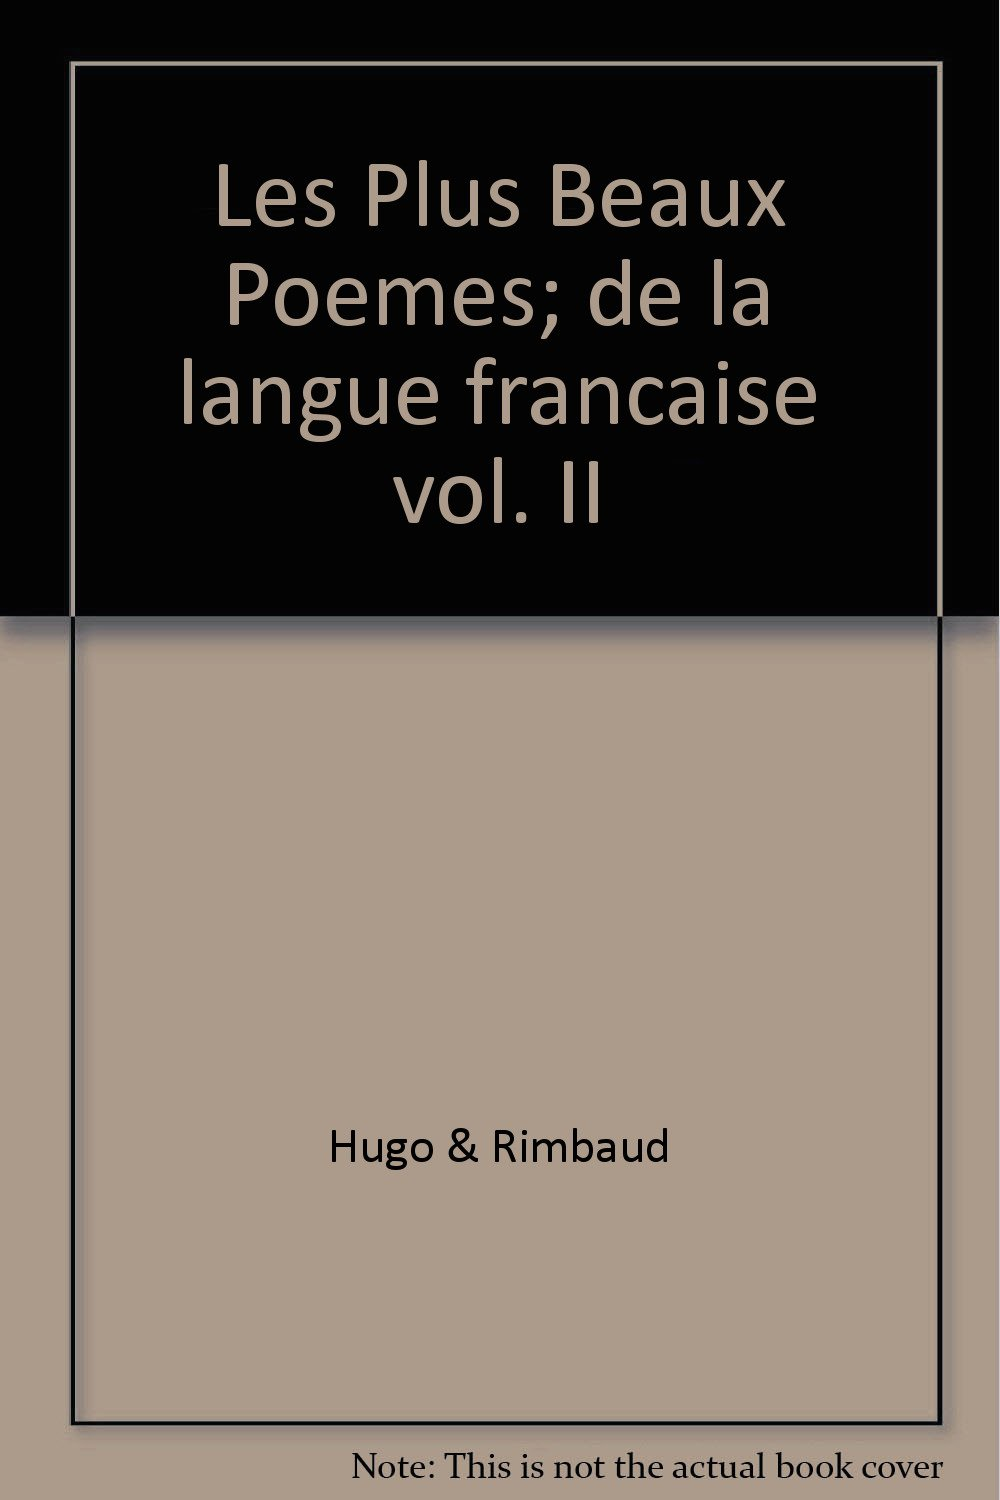 Les Plus Beaux Poemes De La Langue Francaise Vol Ii Hugo